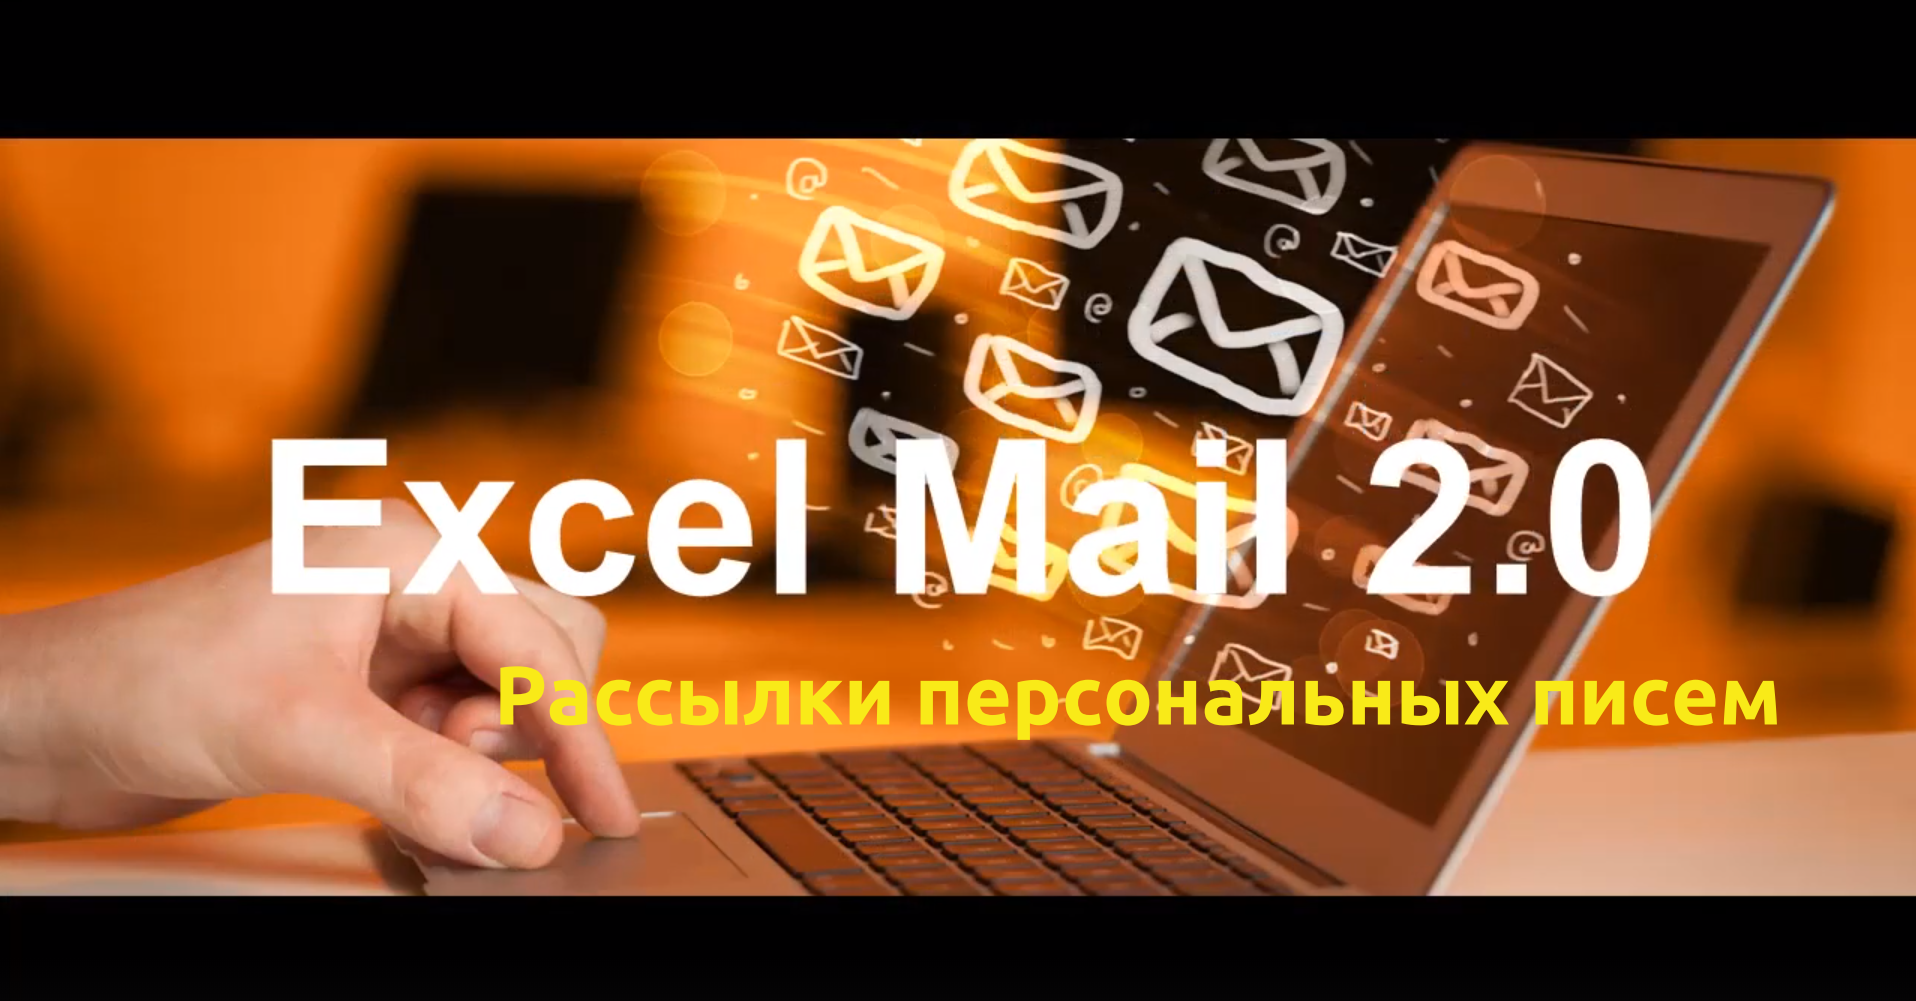 ExcelMail personal mailing from excel